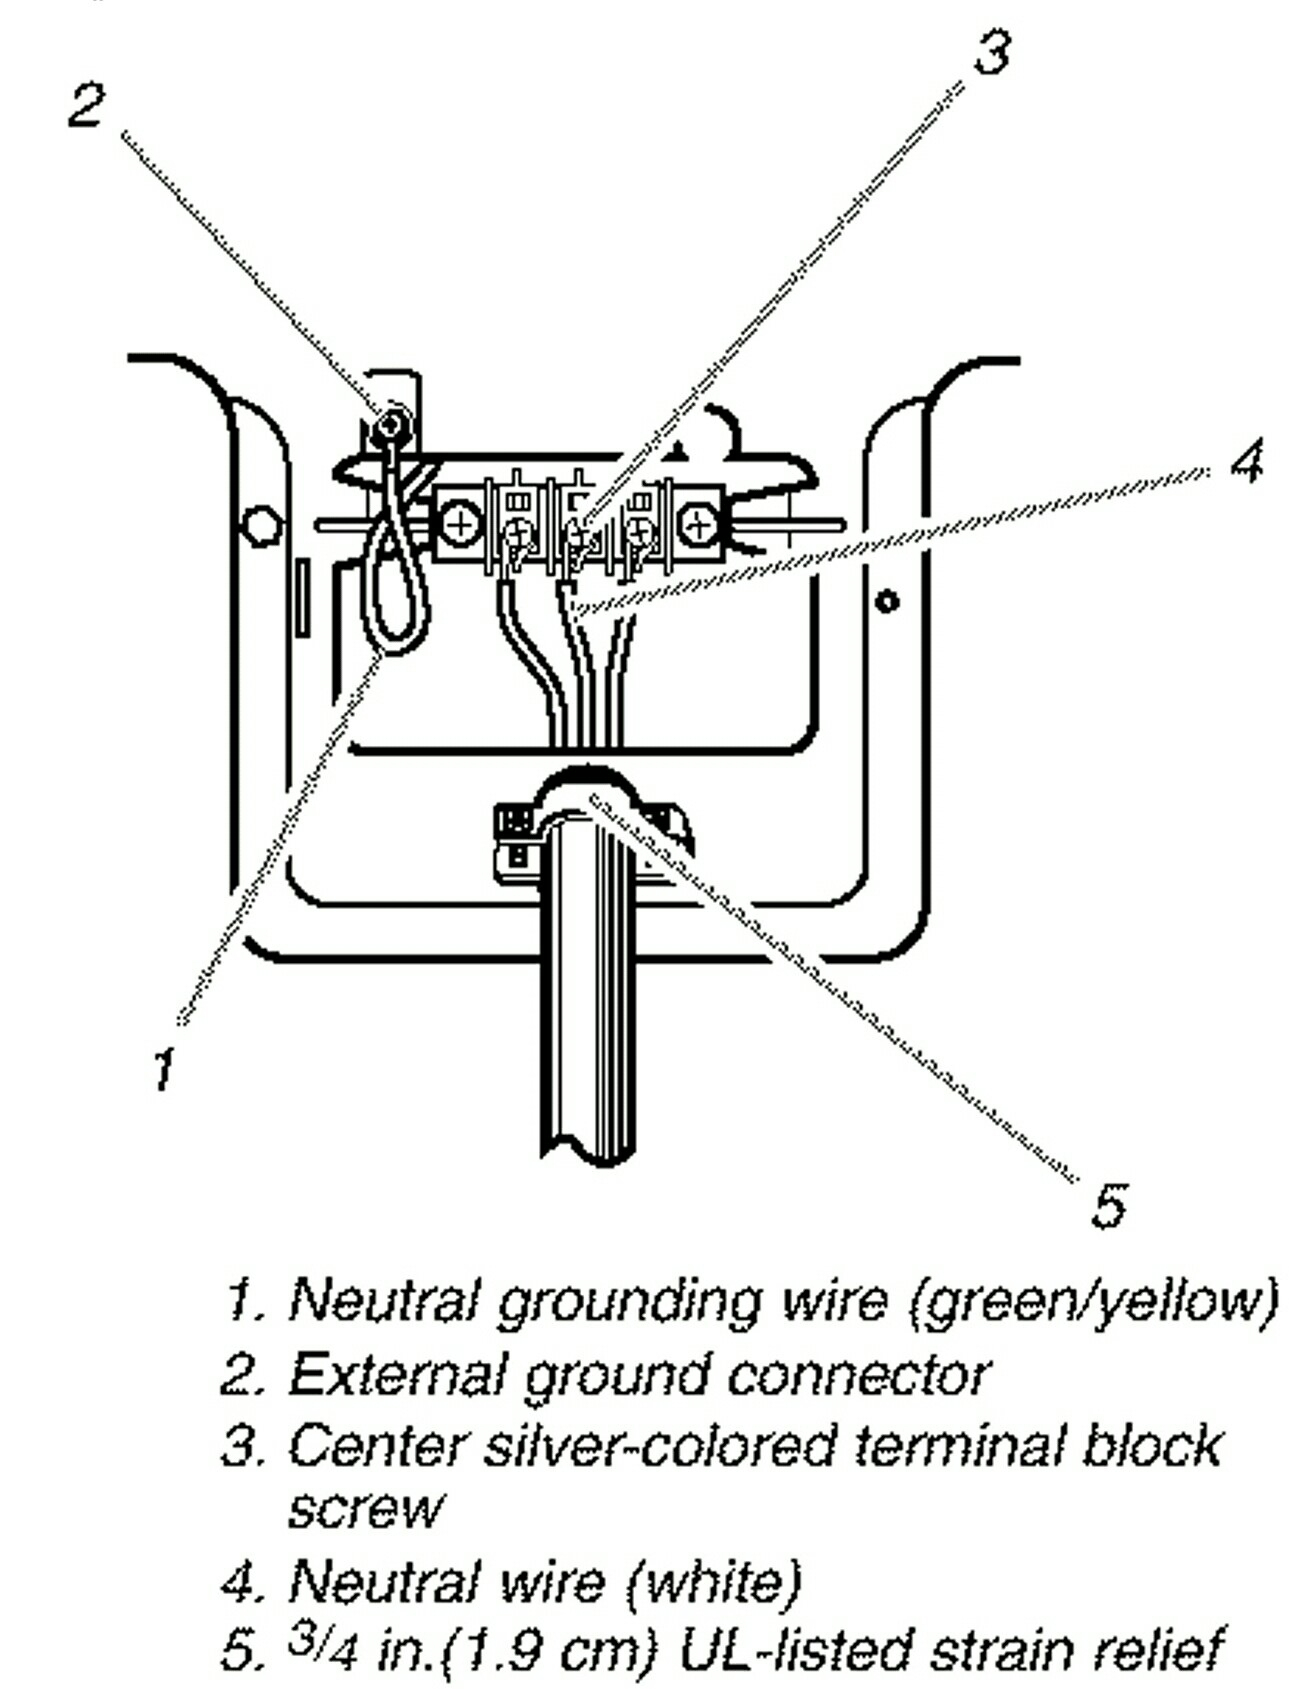 Cord And Plug - White Wire When Changing From 4 Prong To 3 On Dryer - Three Prong Plug Wiring Diagram